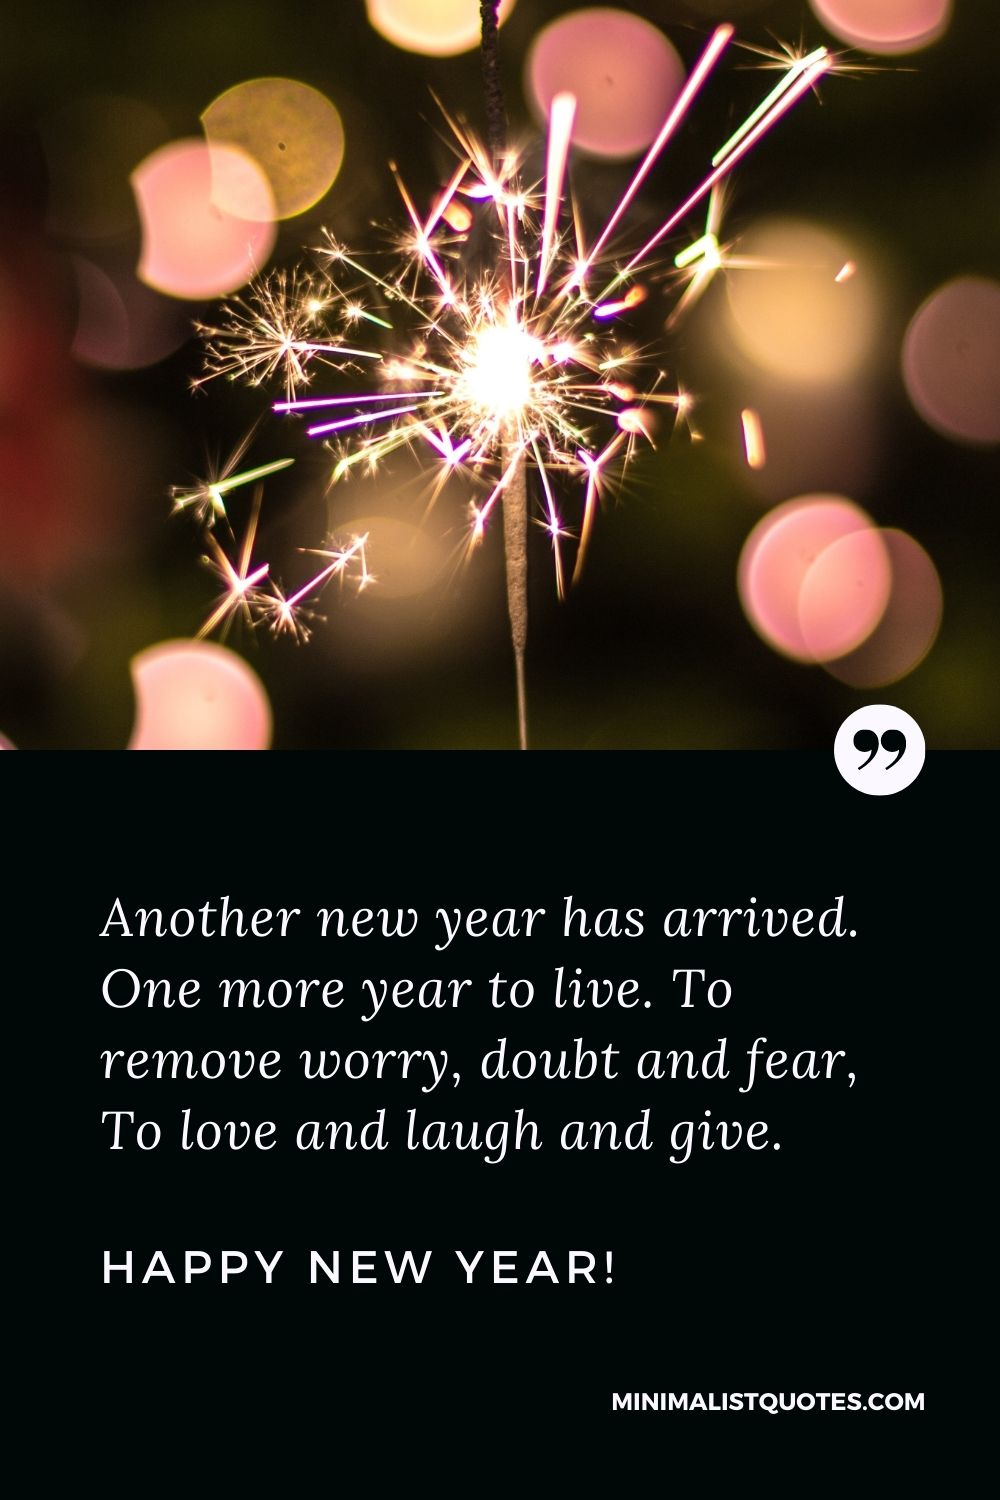 New year wishes for loved one: Another new year has arrived. One more year to live. To remove worry, doubt and fear, To love and laugh and give. Happy New Year!